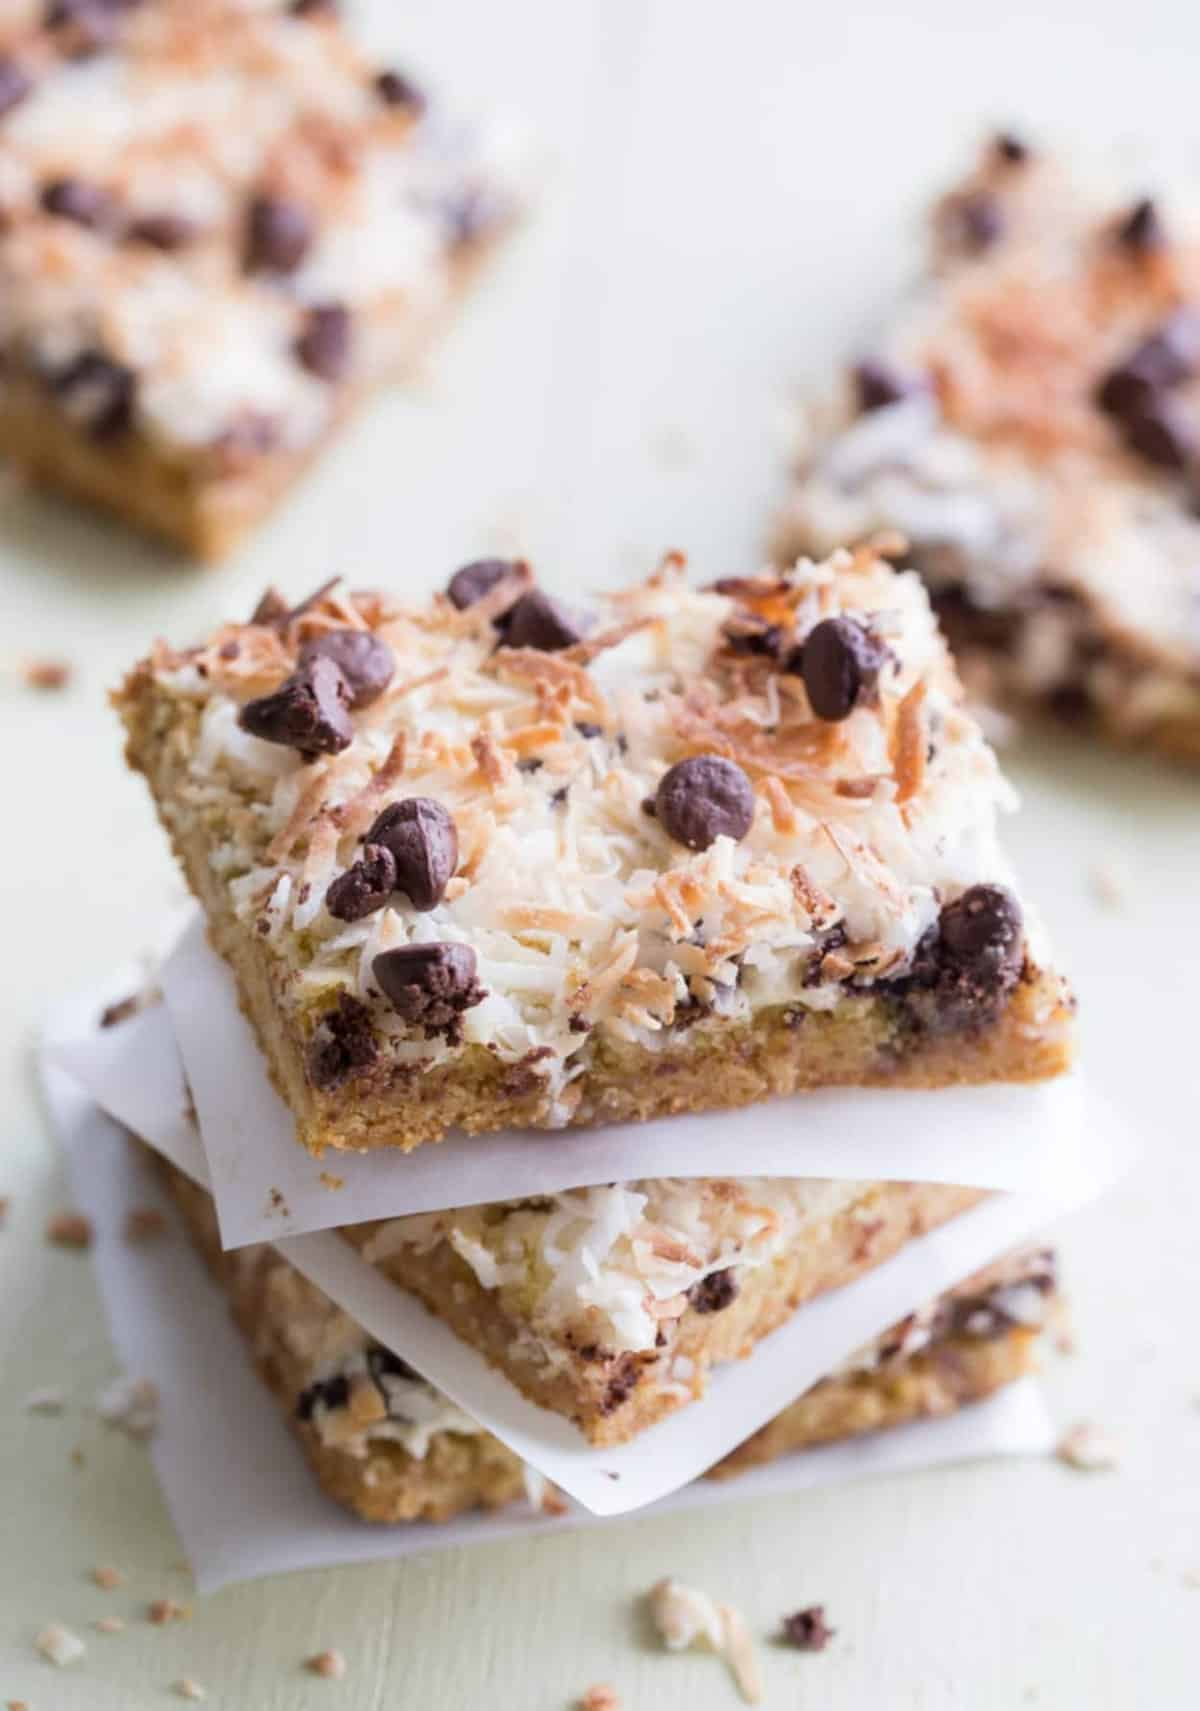 Magic cookie bars stacked on top of each other topped with chocolate chip morsels and coconut shavings.